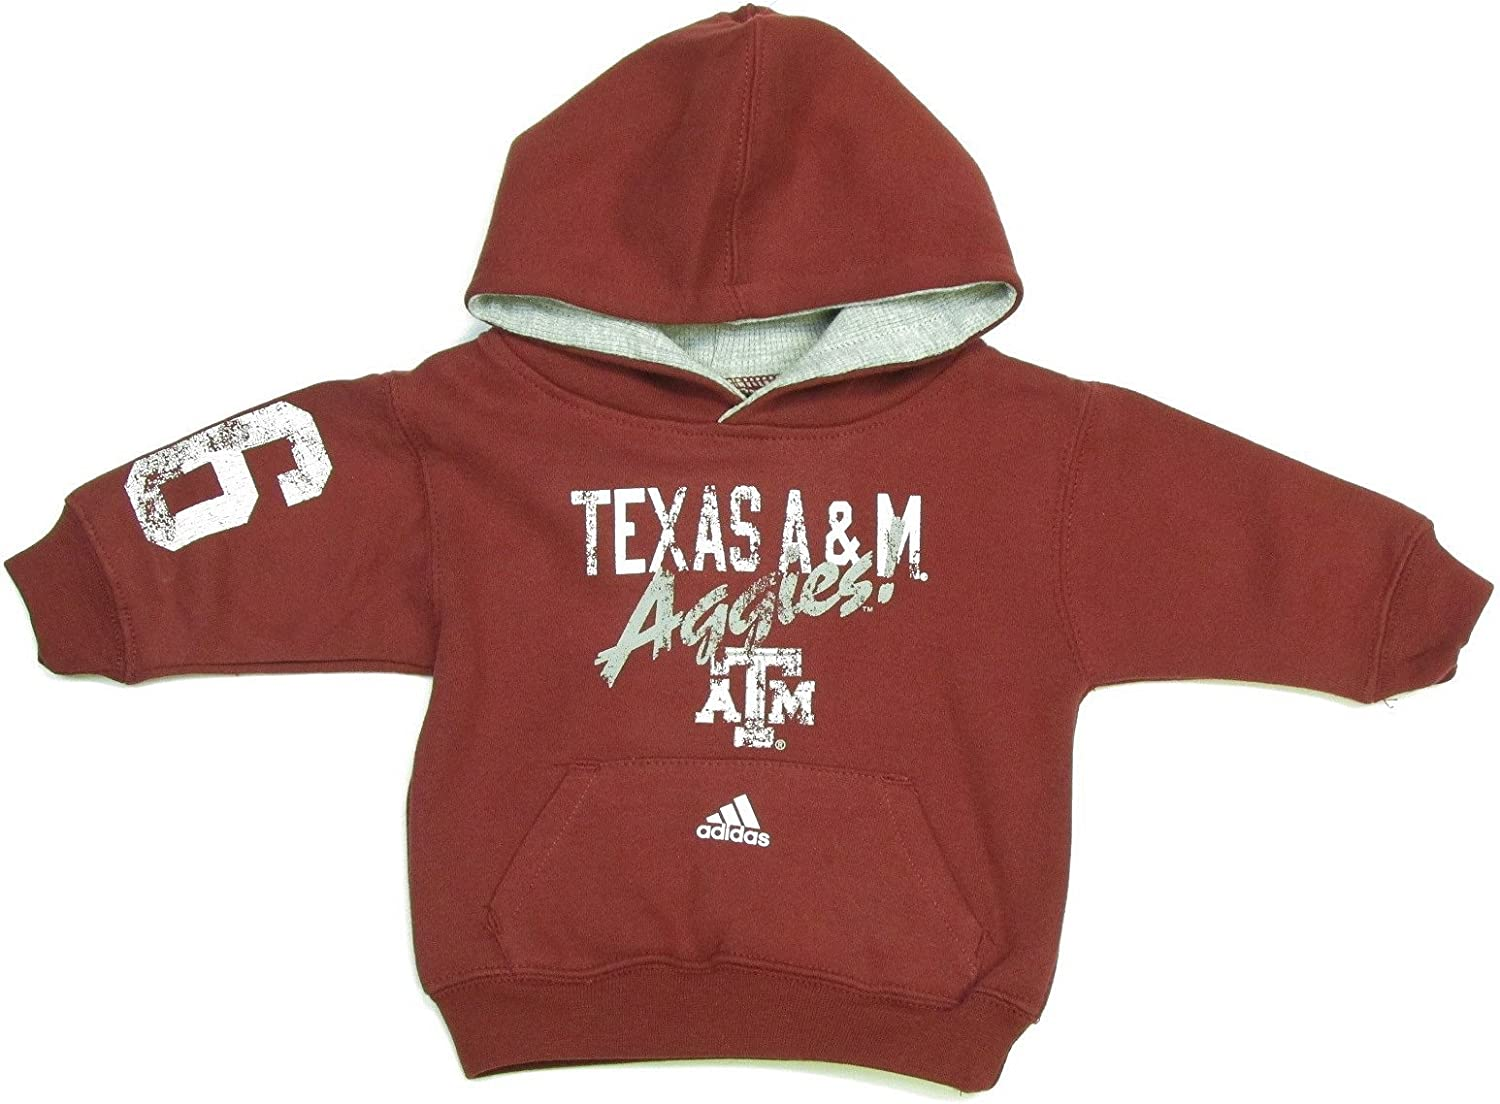 Adidas Texas A&M Aggies Infant Toddler Distressed Hooded Sweatshirt